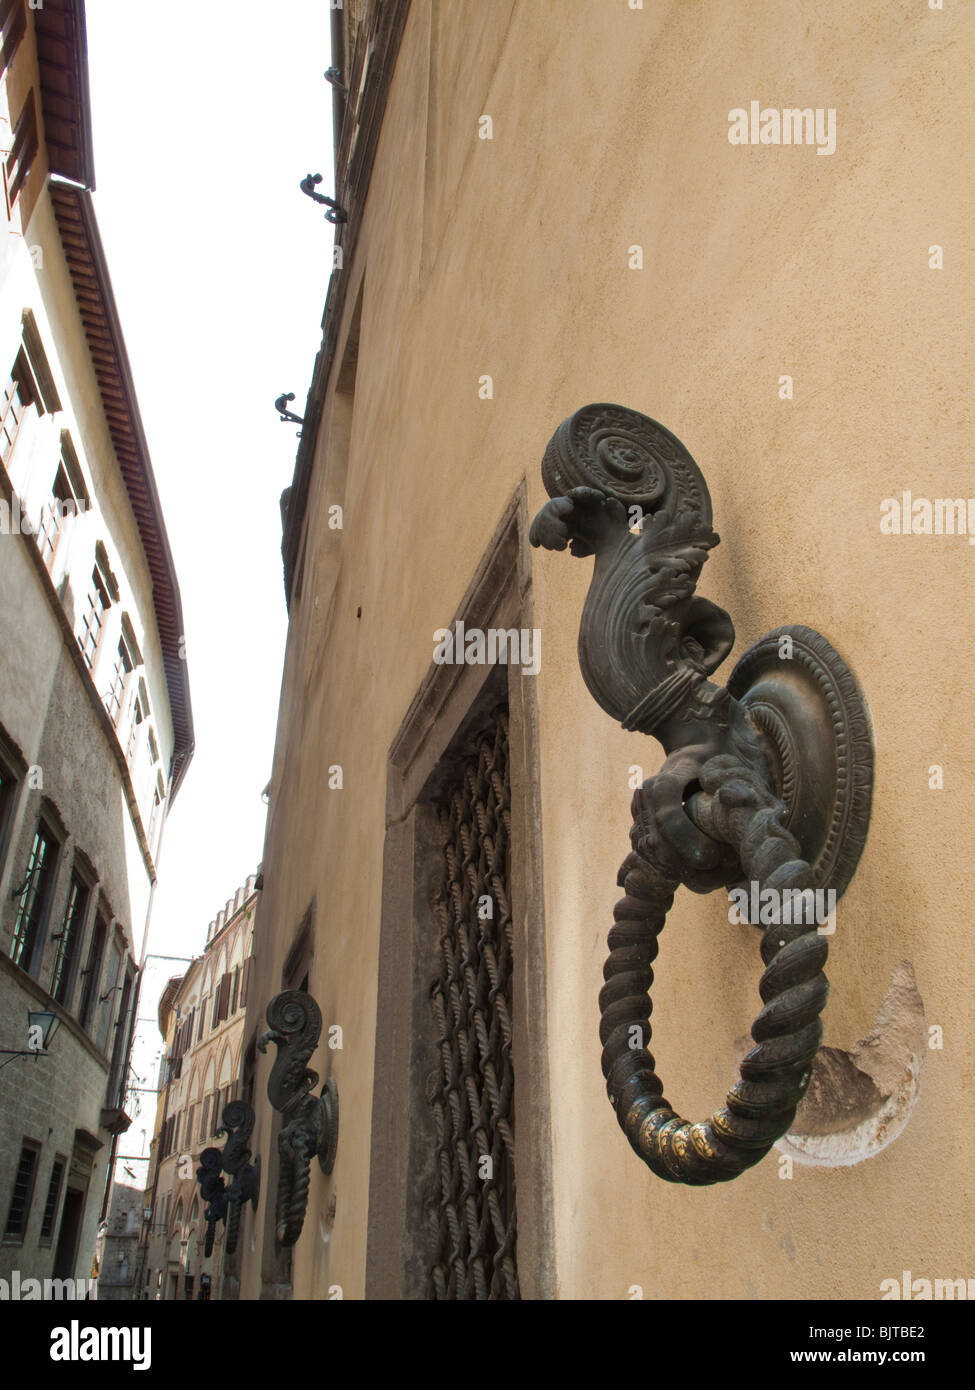 Line of 'Rein rings' on wall in Siena, Italy - Stock Image